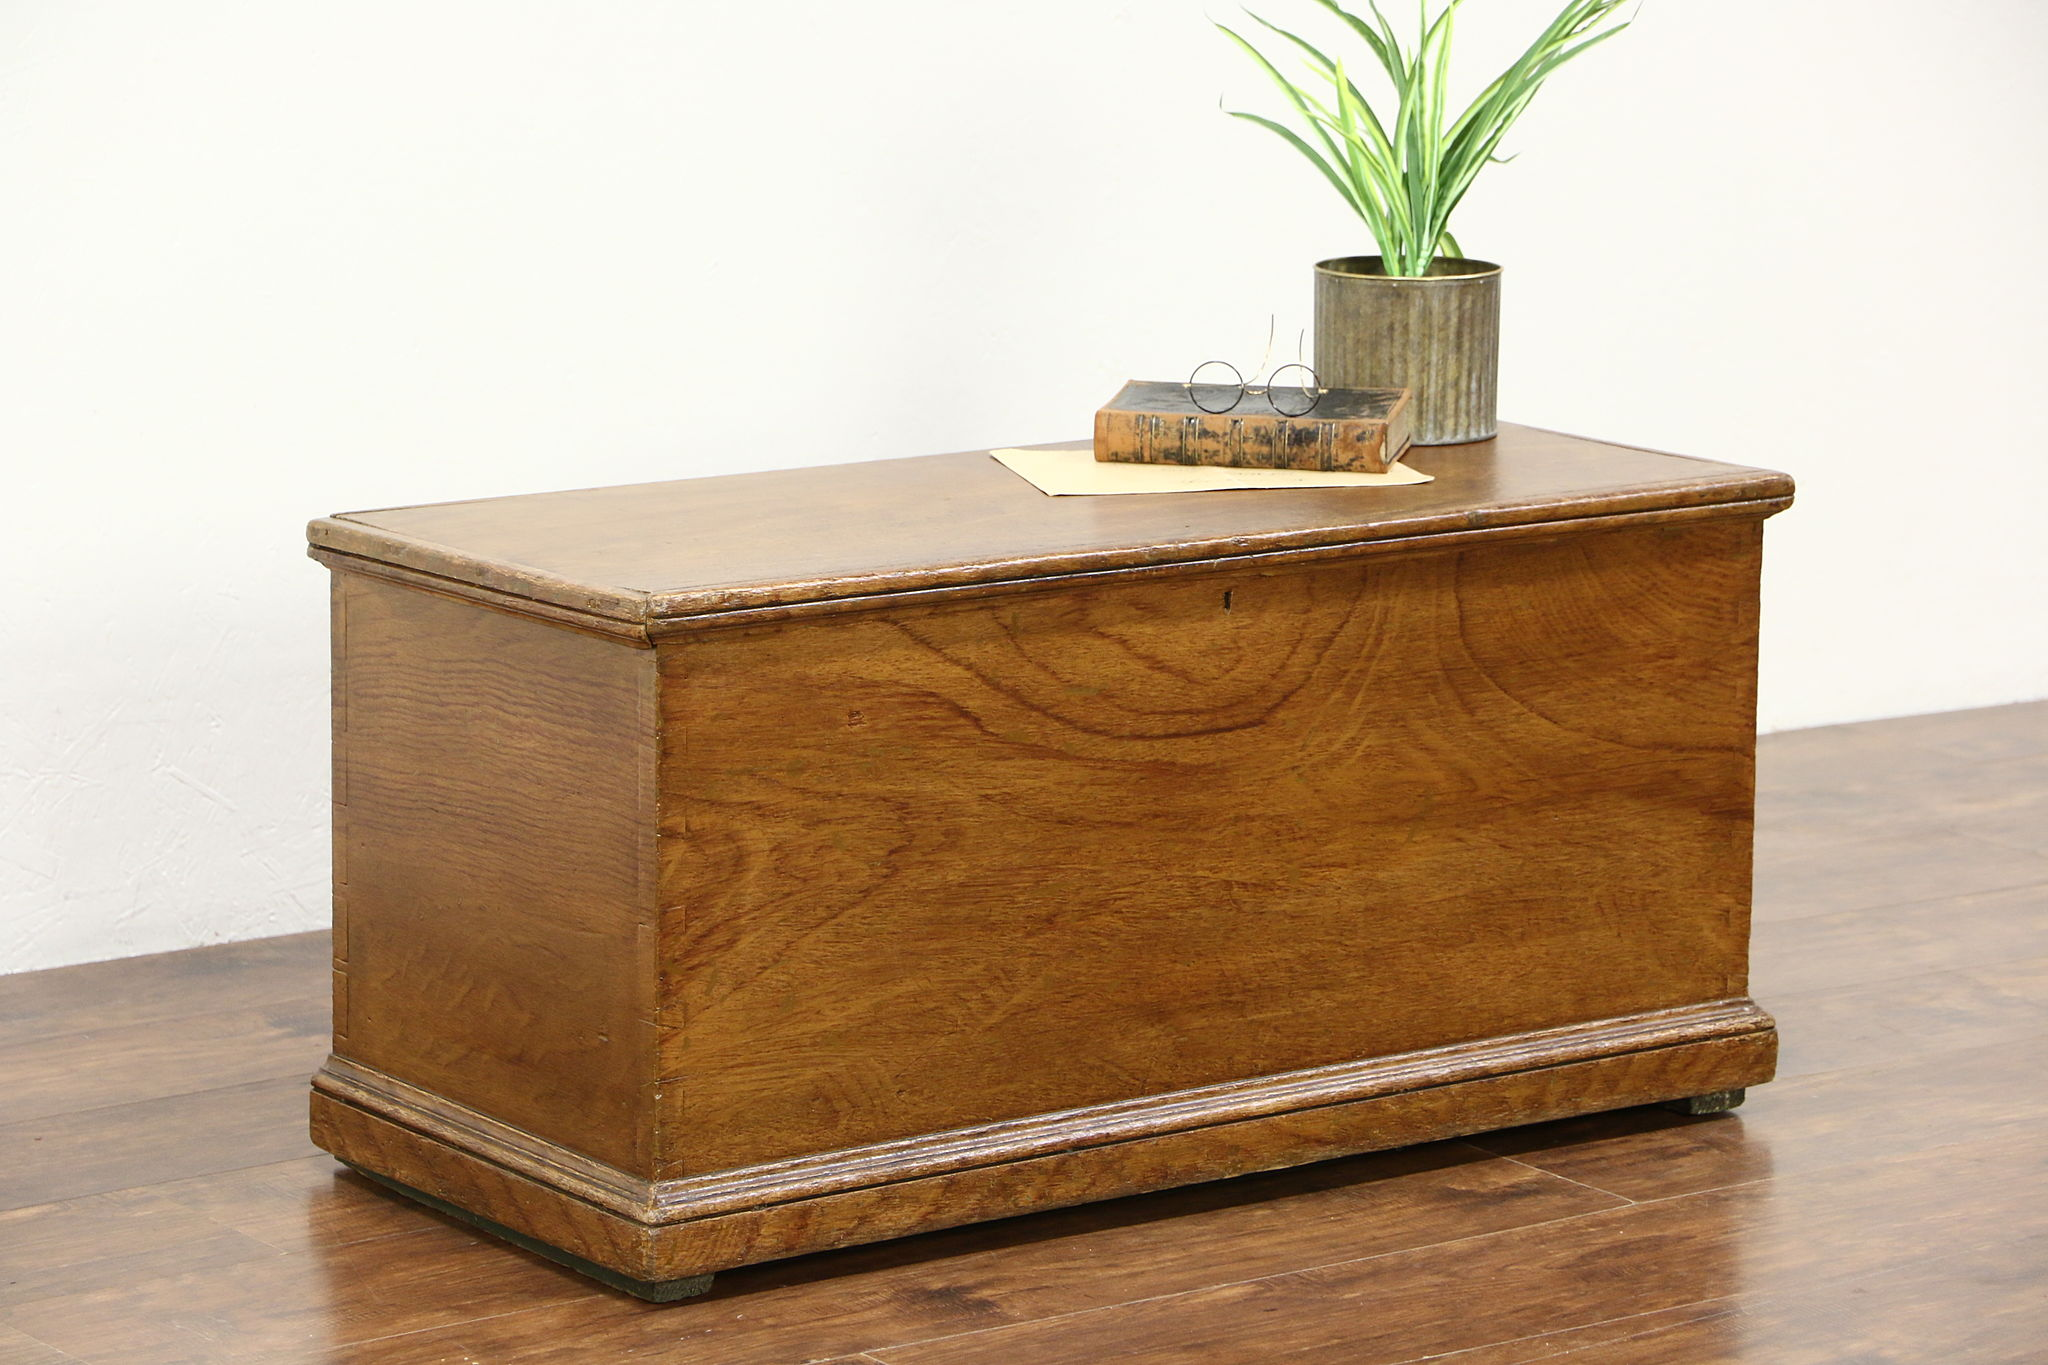 Trunk Blanket Chest or Coffee Table Grain Painted Pine 1850 s